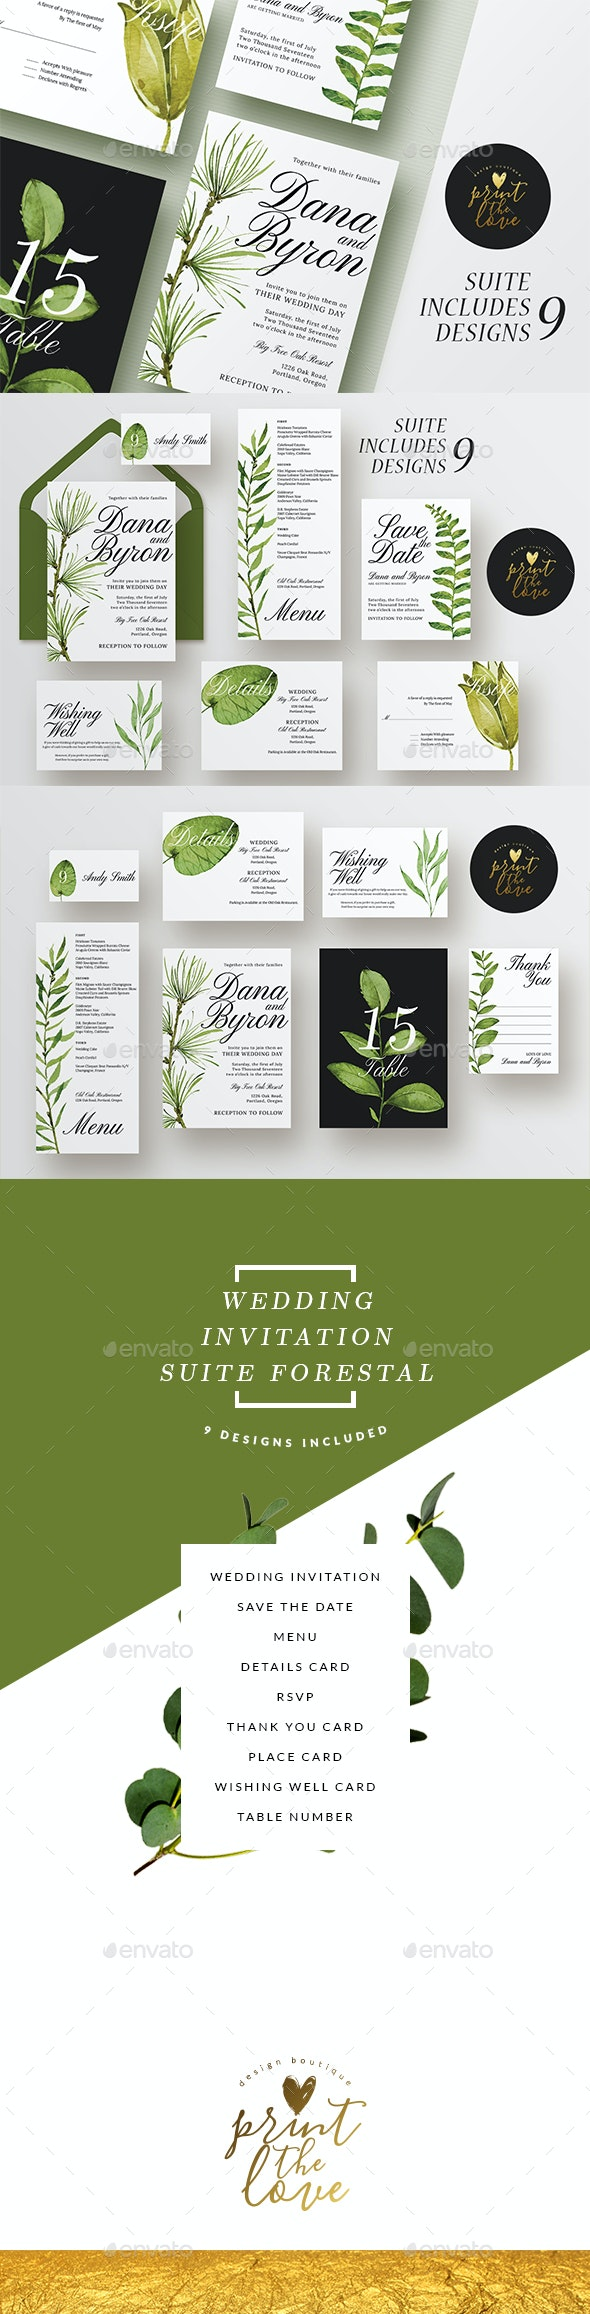 Wedding Invitation Suite - Forestal - Weddings Cards & Invites